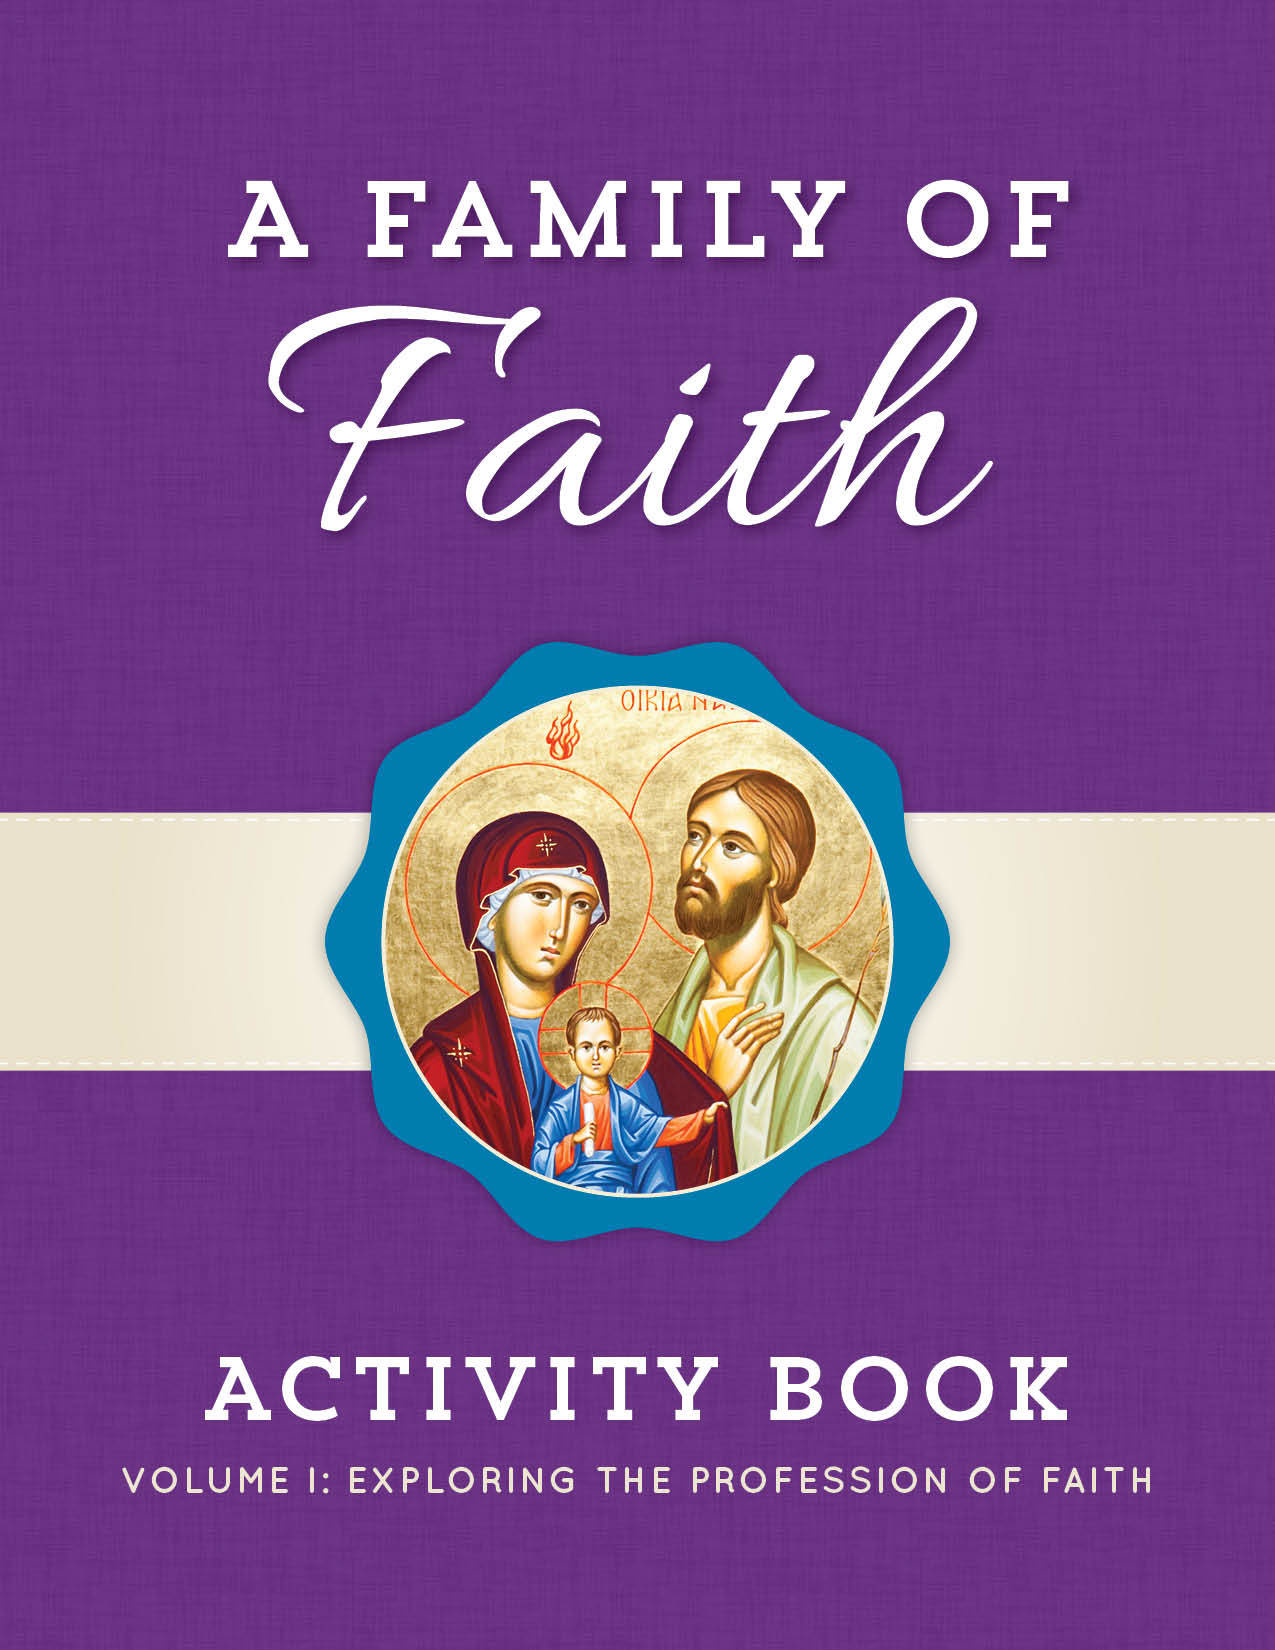 A Family of Faith Volume 1: Exploring the Profession of Faith Activity ebook